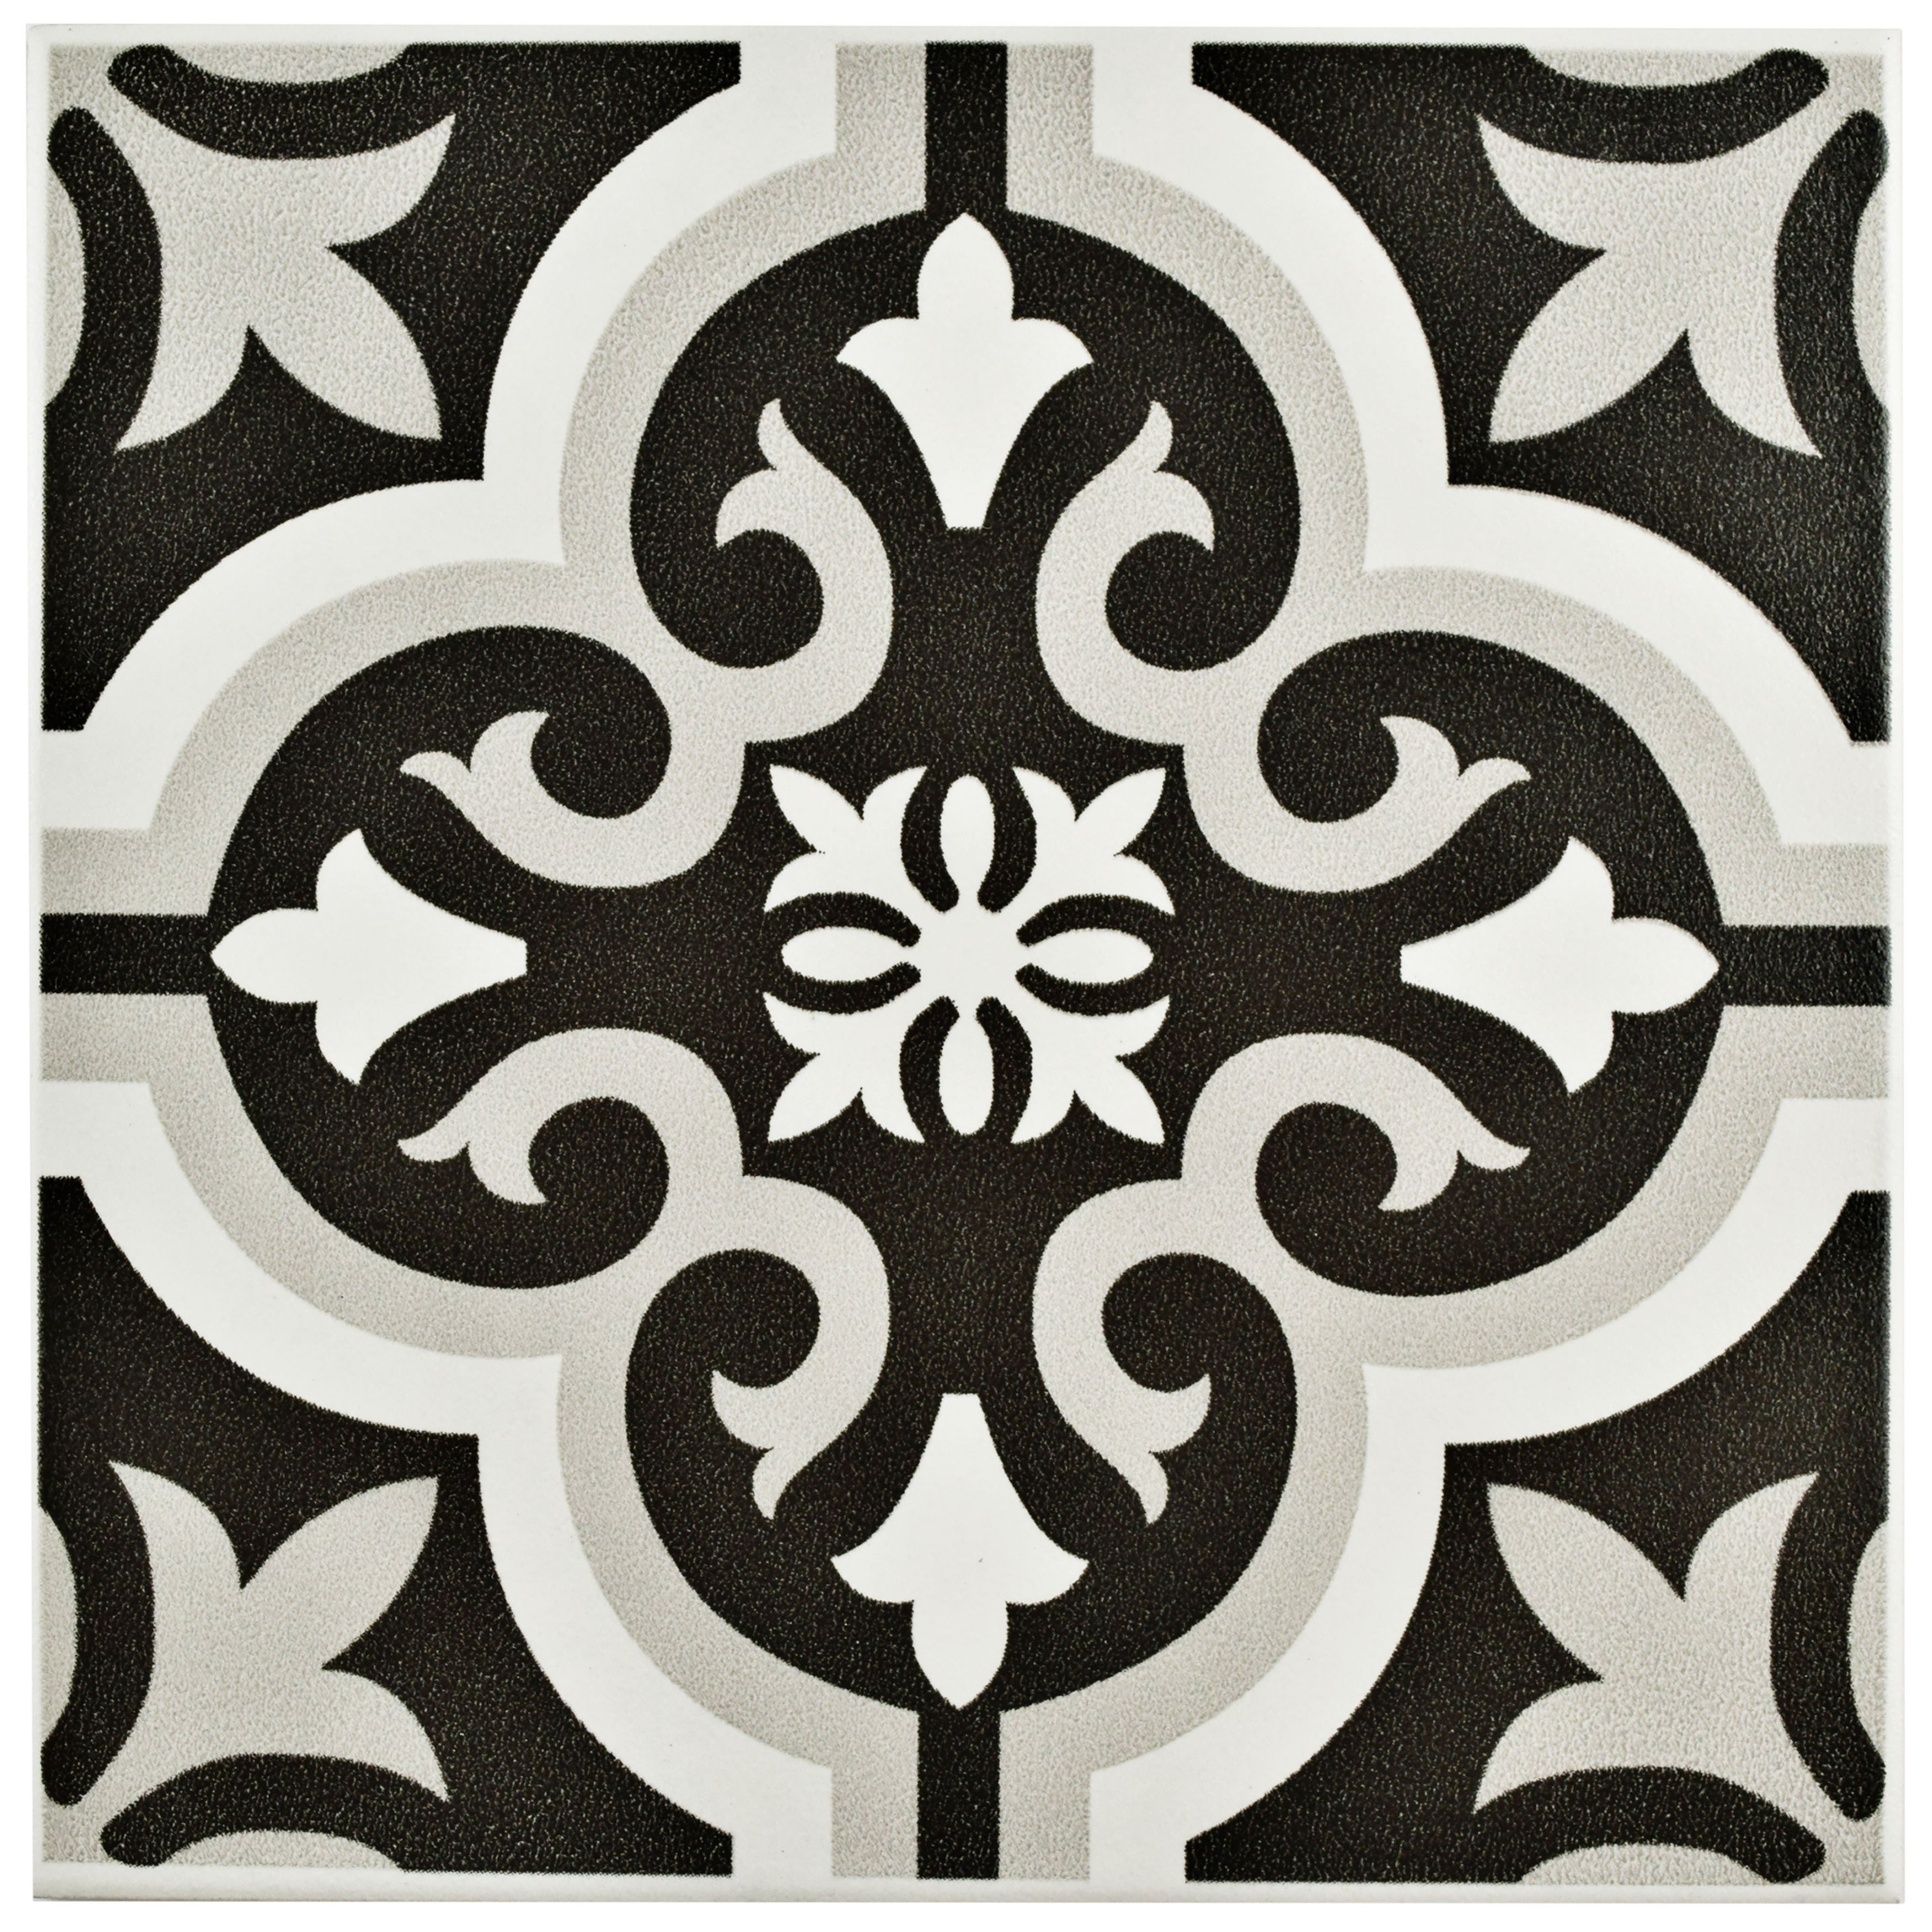 Shop Somertile 775x775 Inch Cavado Classic Ceramic Floor And Wall